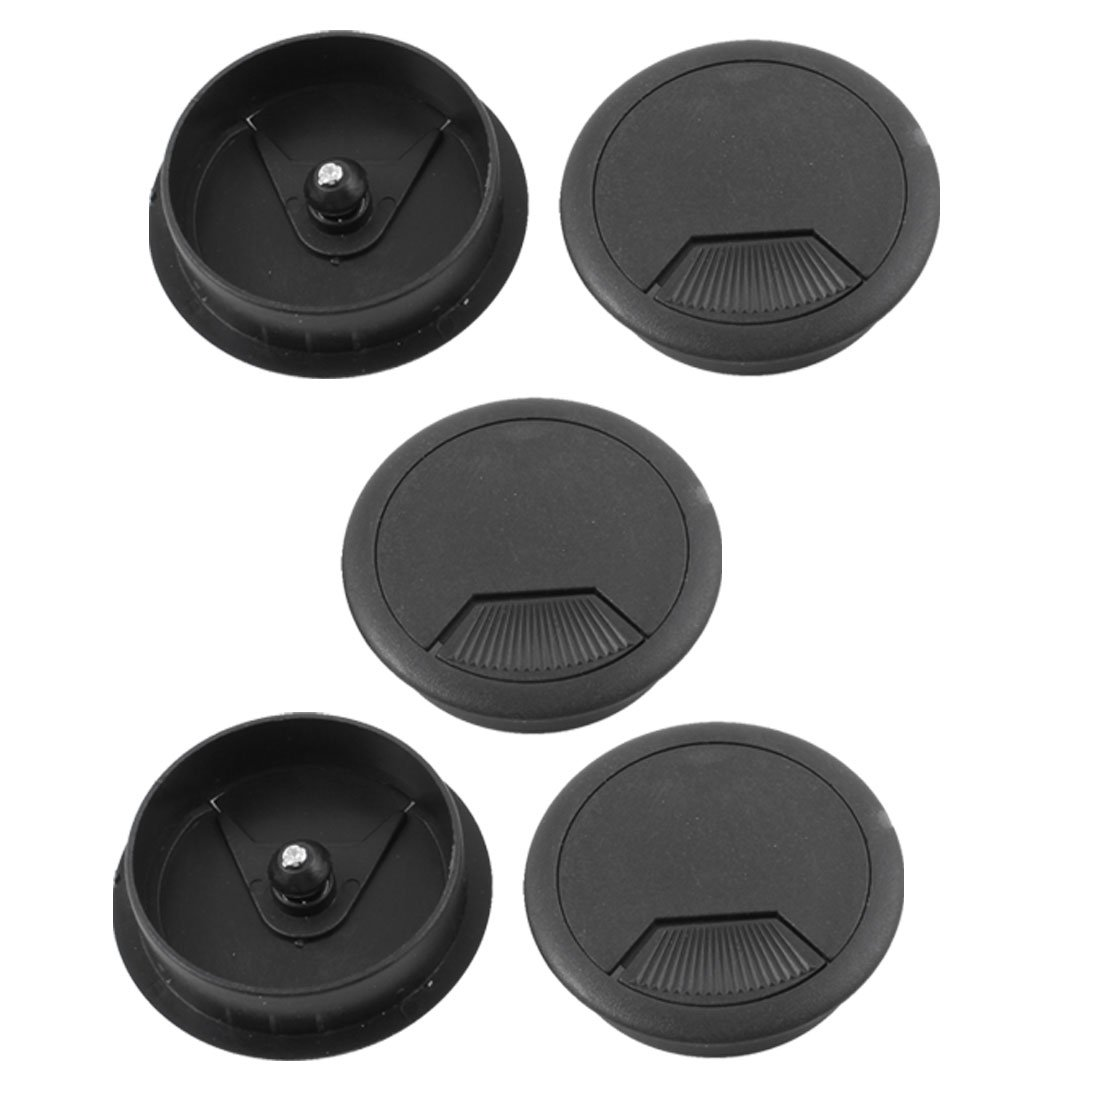 5 Pcs Home Office Desk Table Computer 60mm Cable Cord Grommet Hole